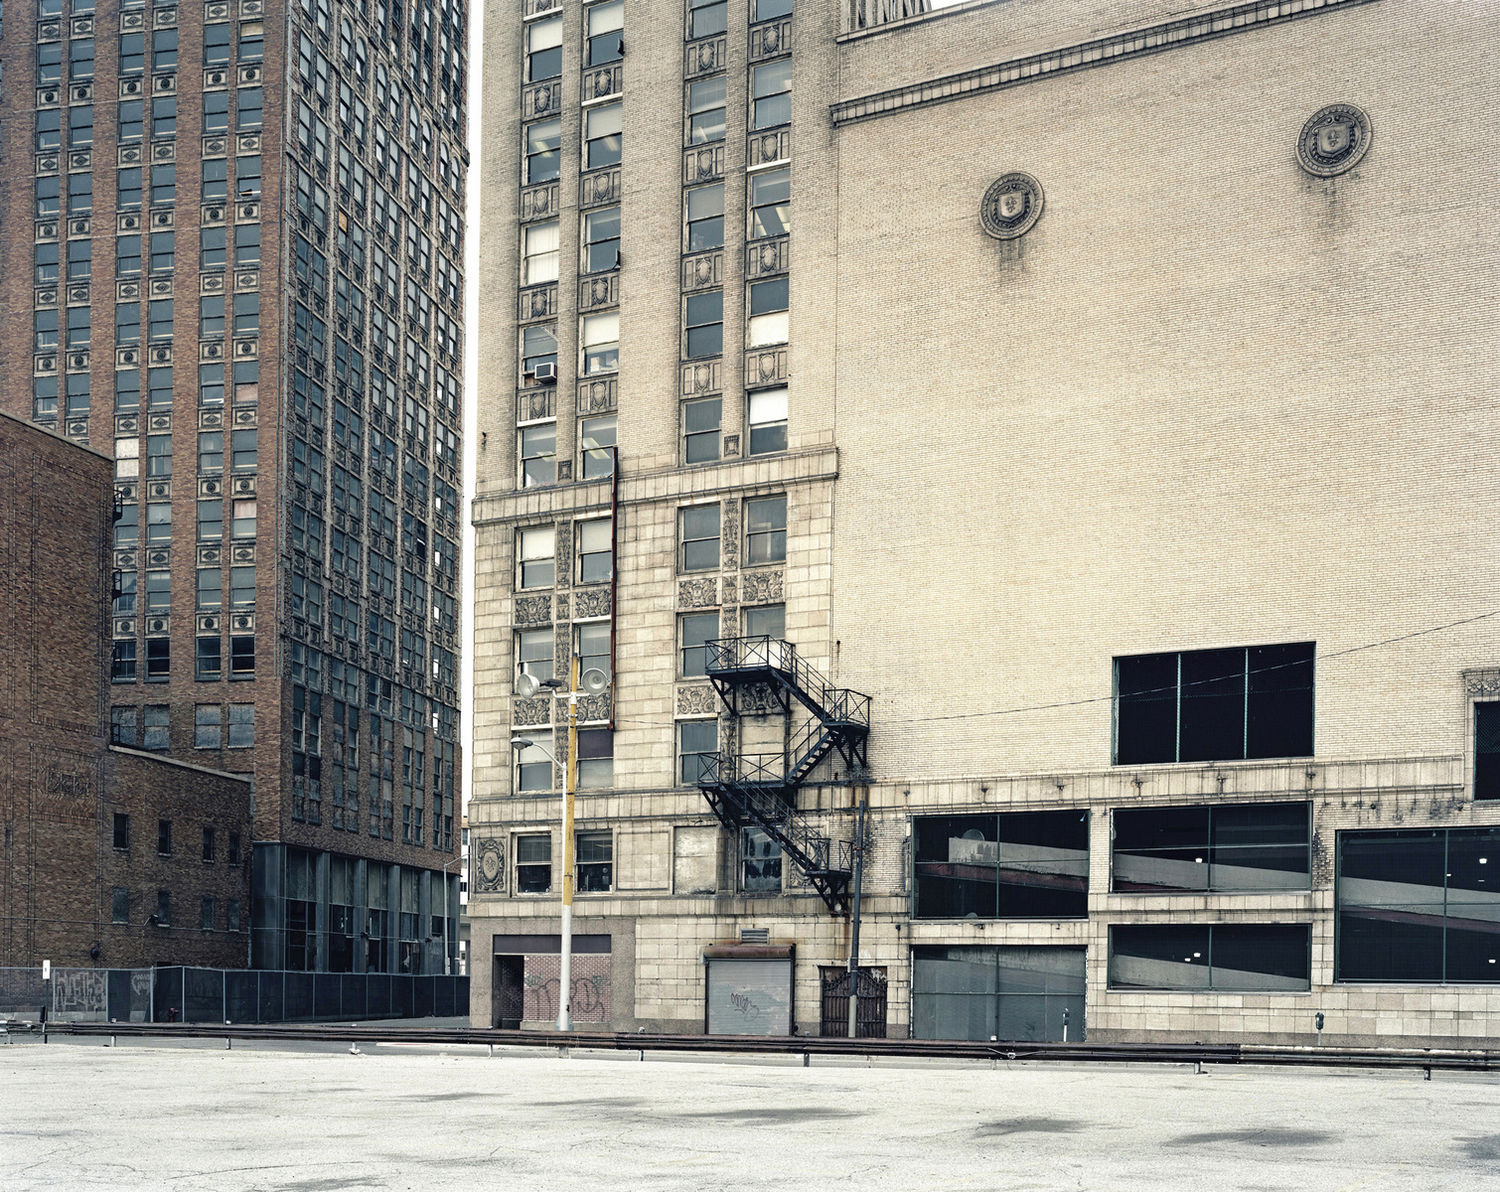 Dominique Uldry, Michigan Theater No. 1, 2010